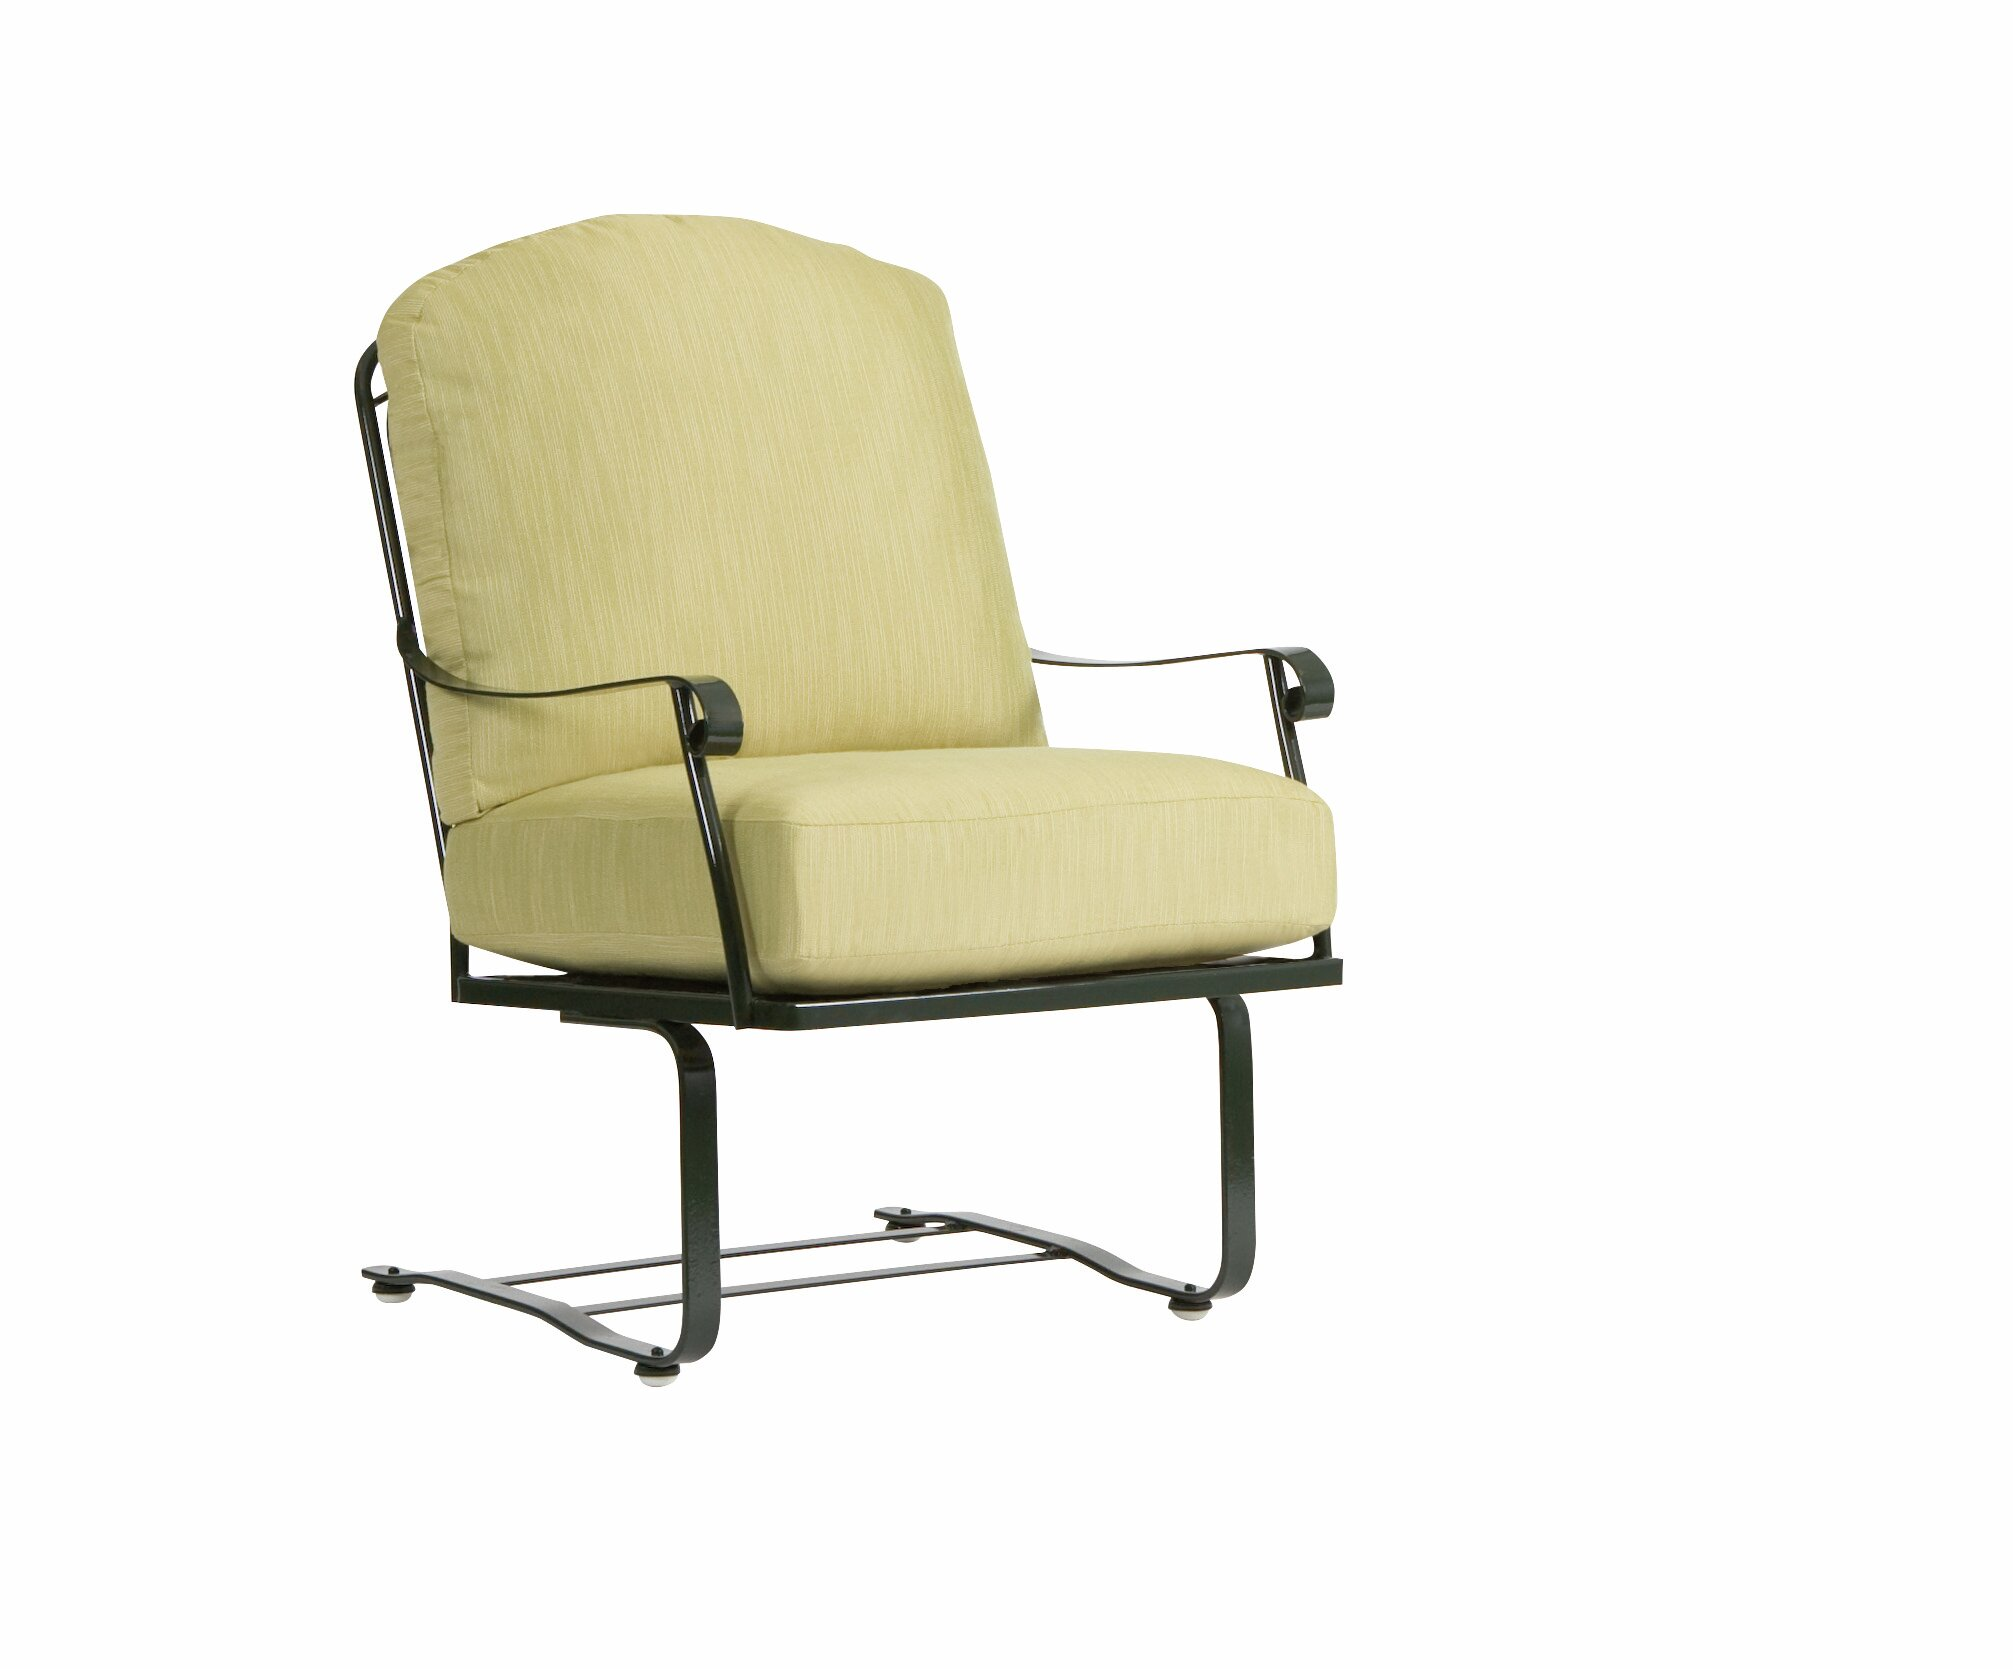 Woodard Fullerton Spring Patio Chair